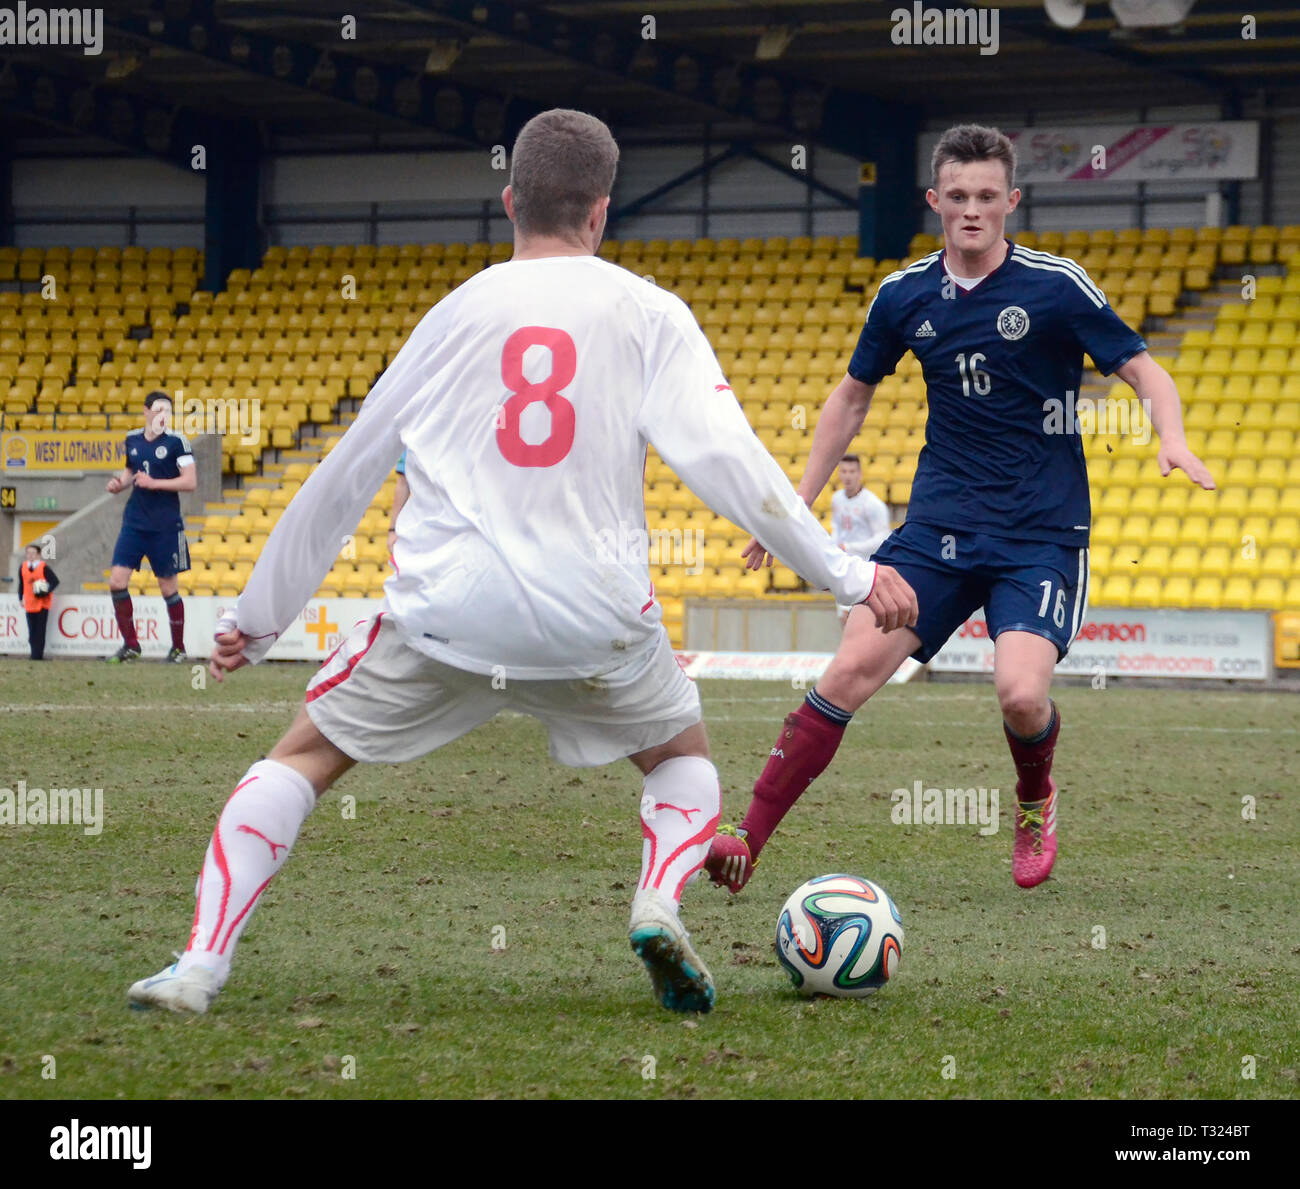 LIVINGSTON, SCOTLAND - 5th MARCH 2014: Scotlands Mens U19s footballer, Liam Henderson eyeing up the ball during a European cup match. - Stock Image